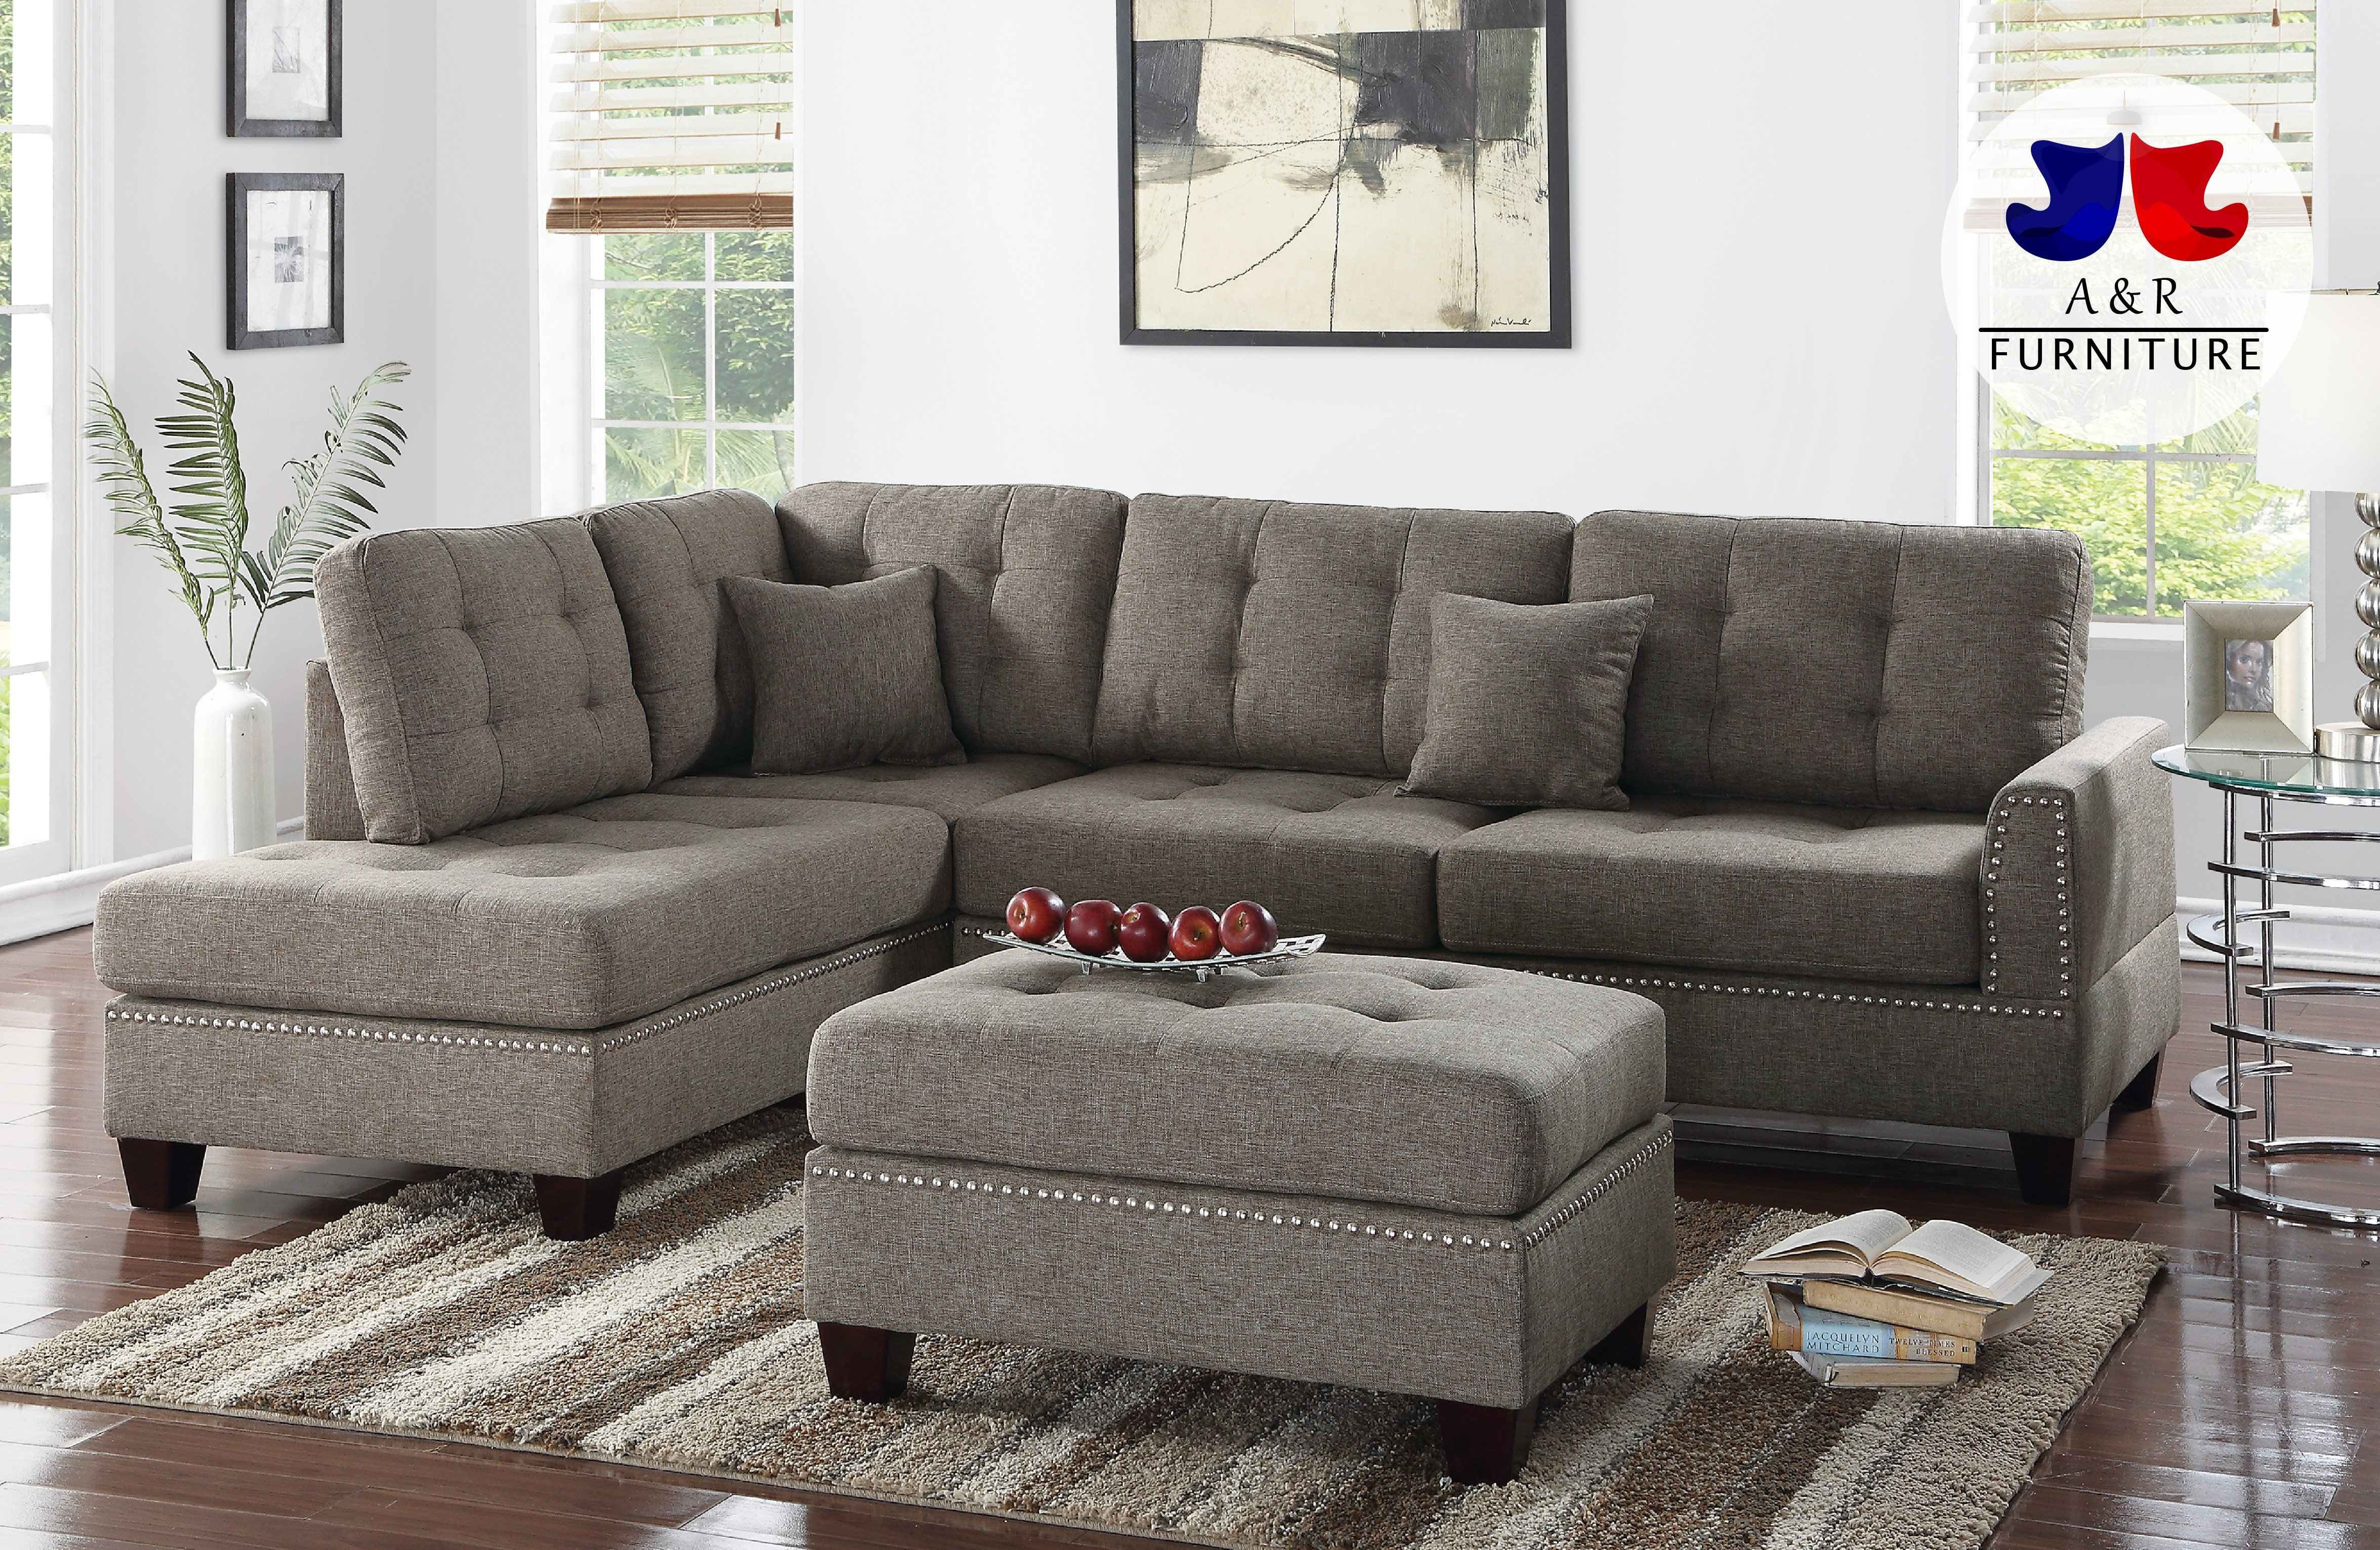 3pc Reversible Chaise Sectional Sofa Ottoman Set Pdx 13 Grey